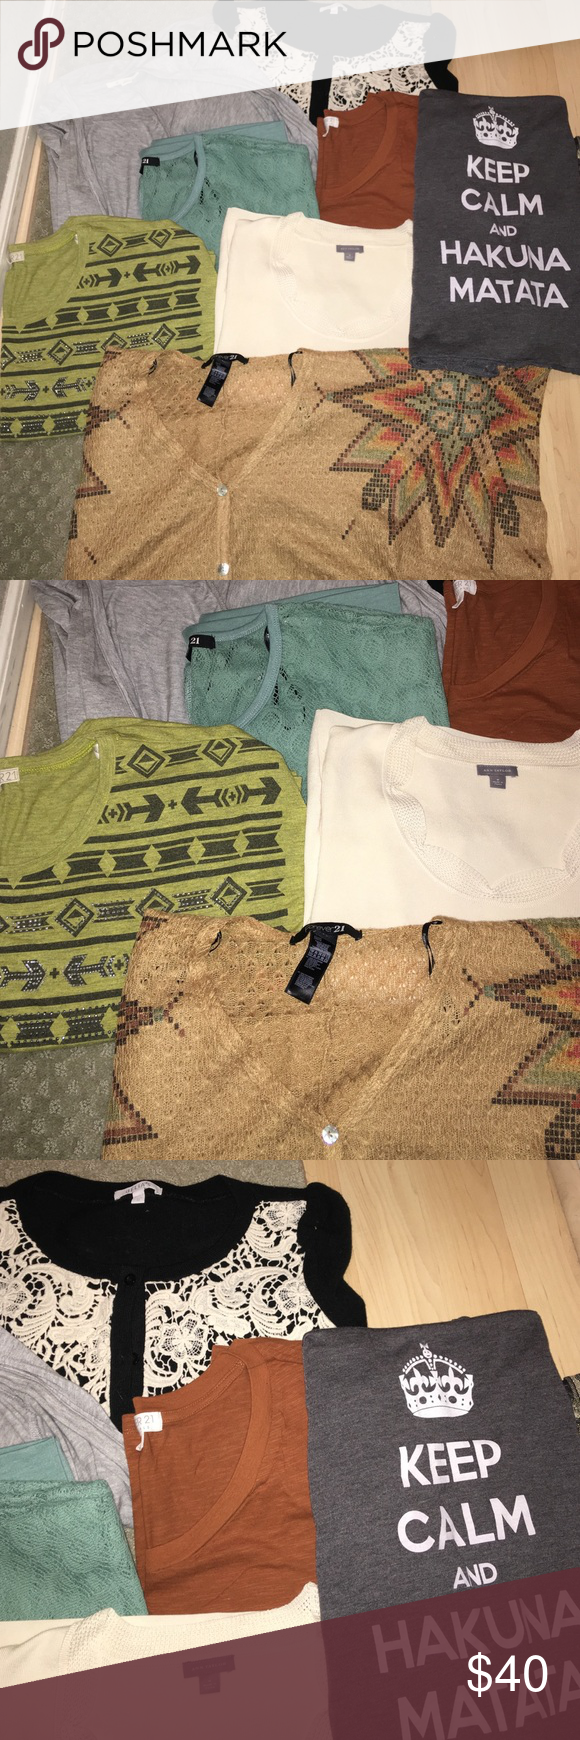 BUNDLE OF 8 ITEMS An assortment of tshirts, tanktops, sweaters/cardigans ALL SIZE MEDIUM. Brands range (Forever21, Ann Taylor, Delia's, Bella) Selling the bundle together!! NO DAMAGE DONE TO ANY OF THE ITEMS Tops